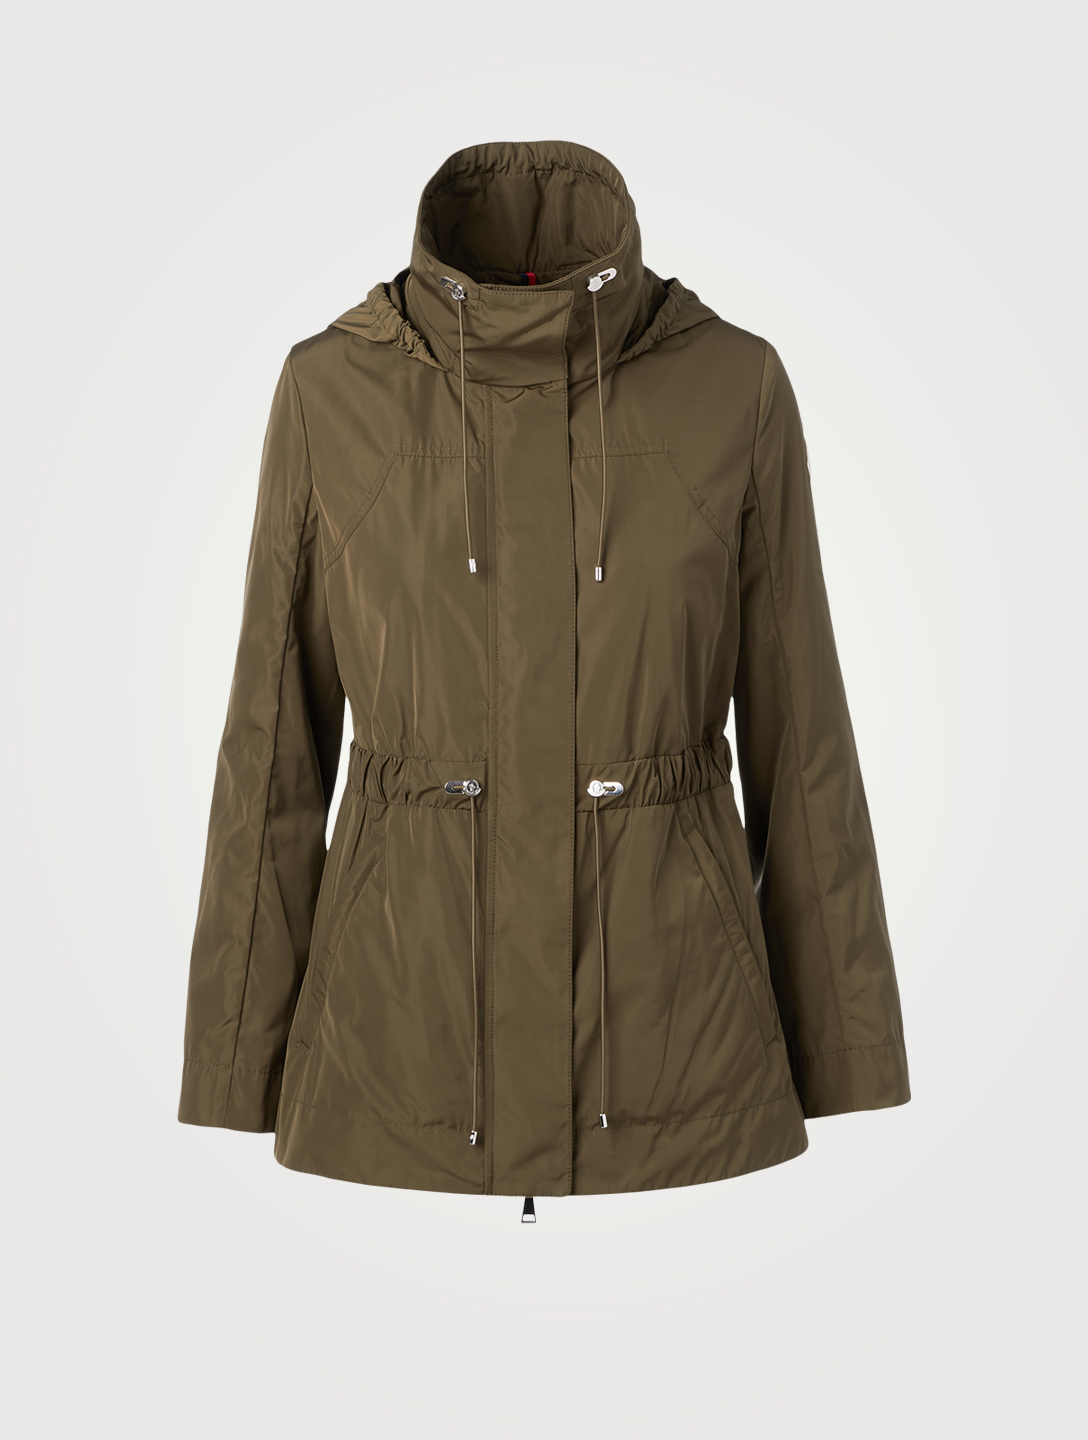 MONCLER Ocre Short Parka Women's Green